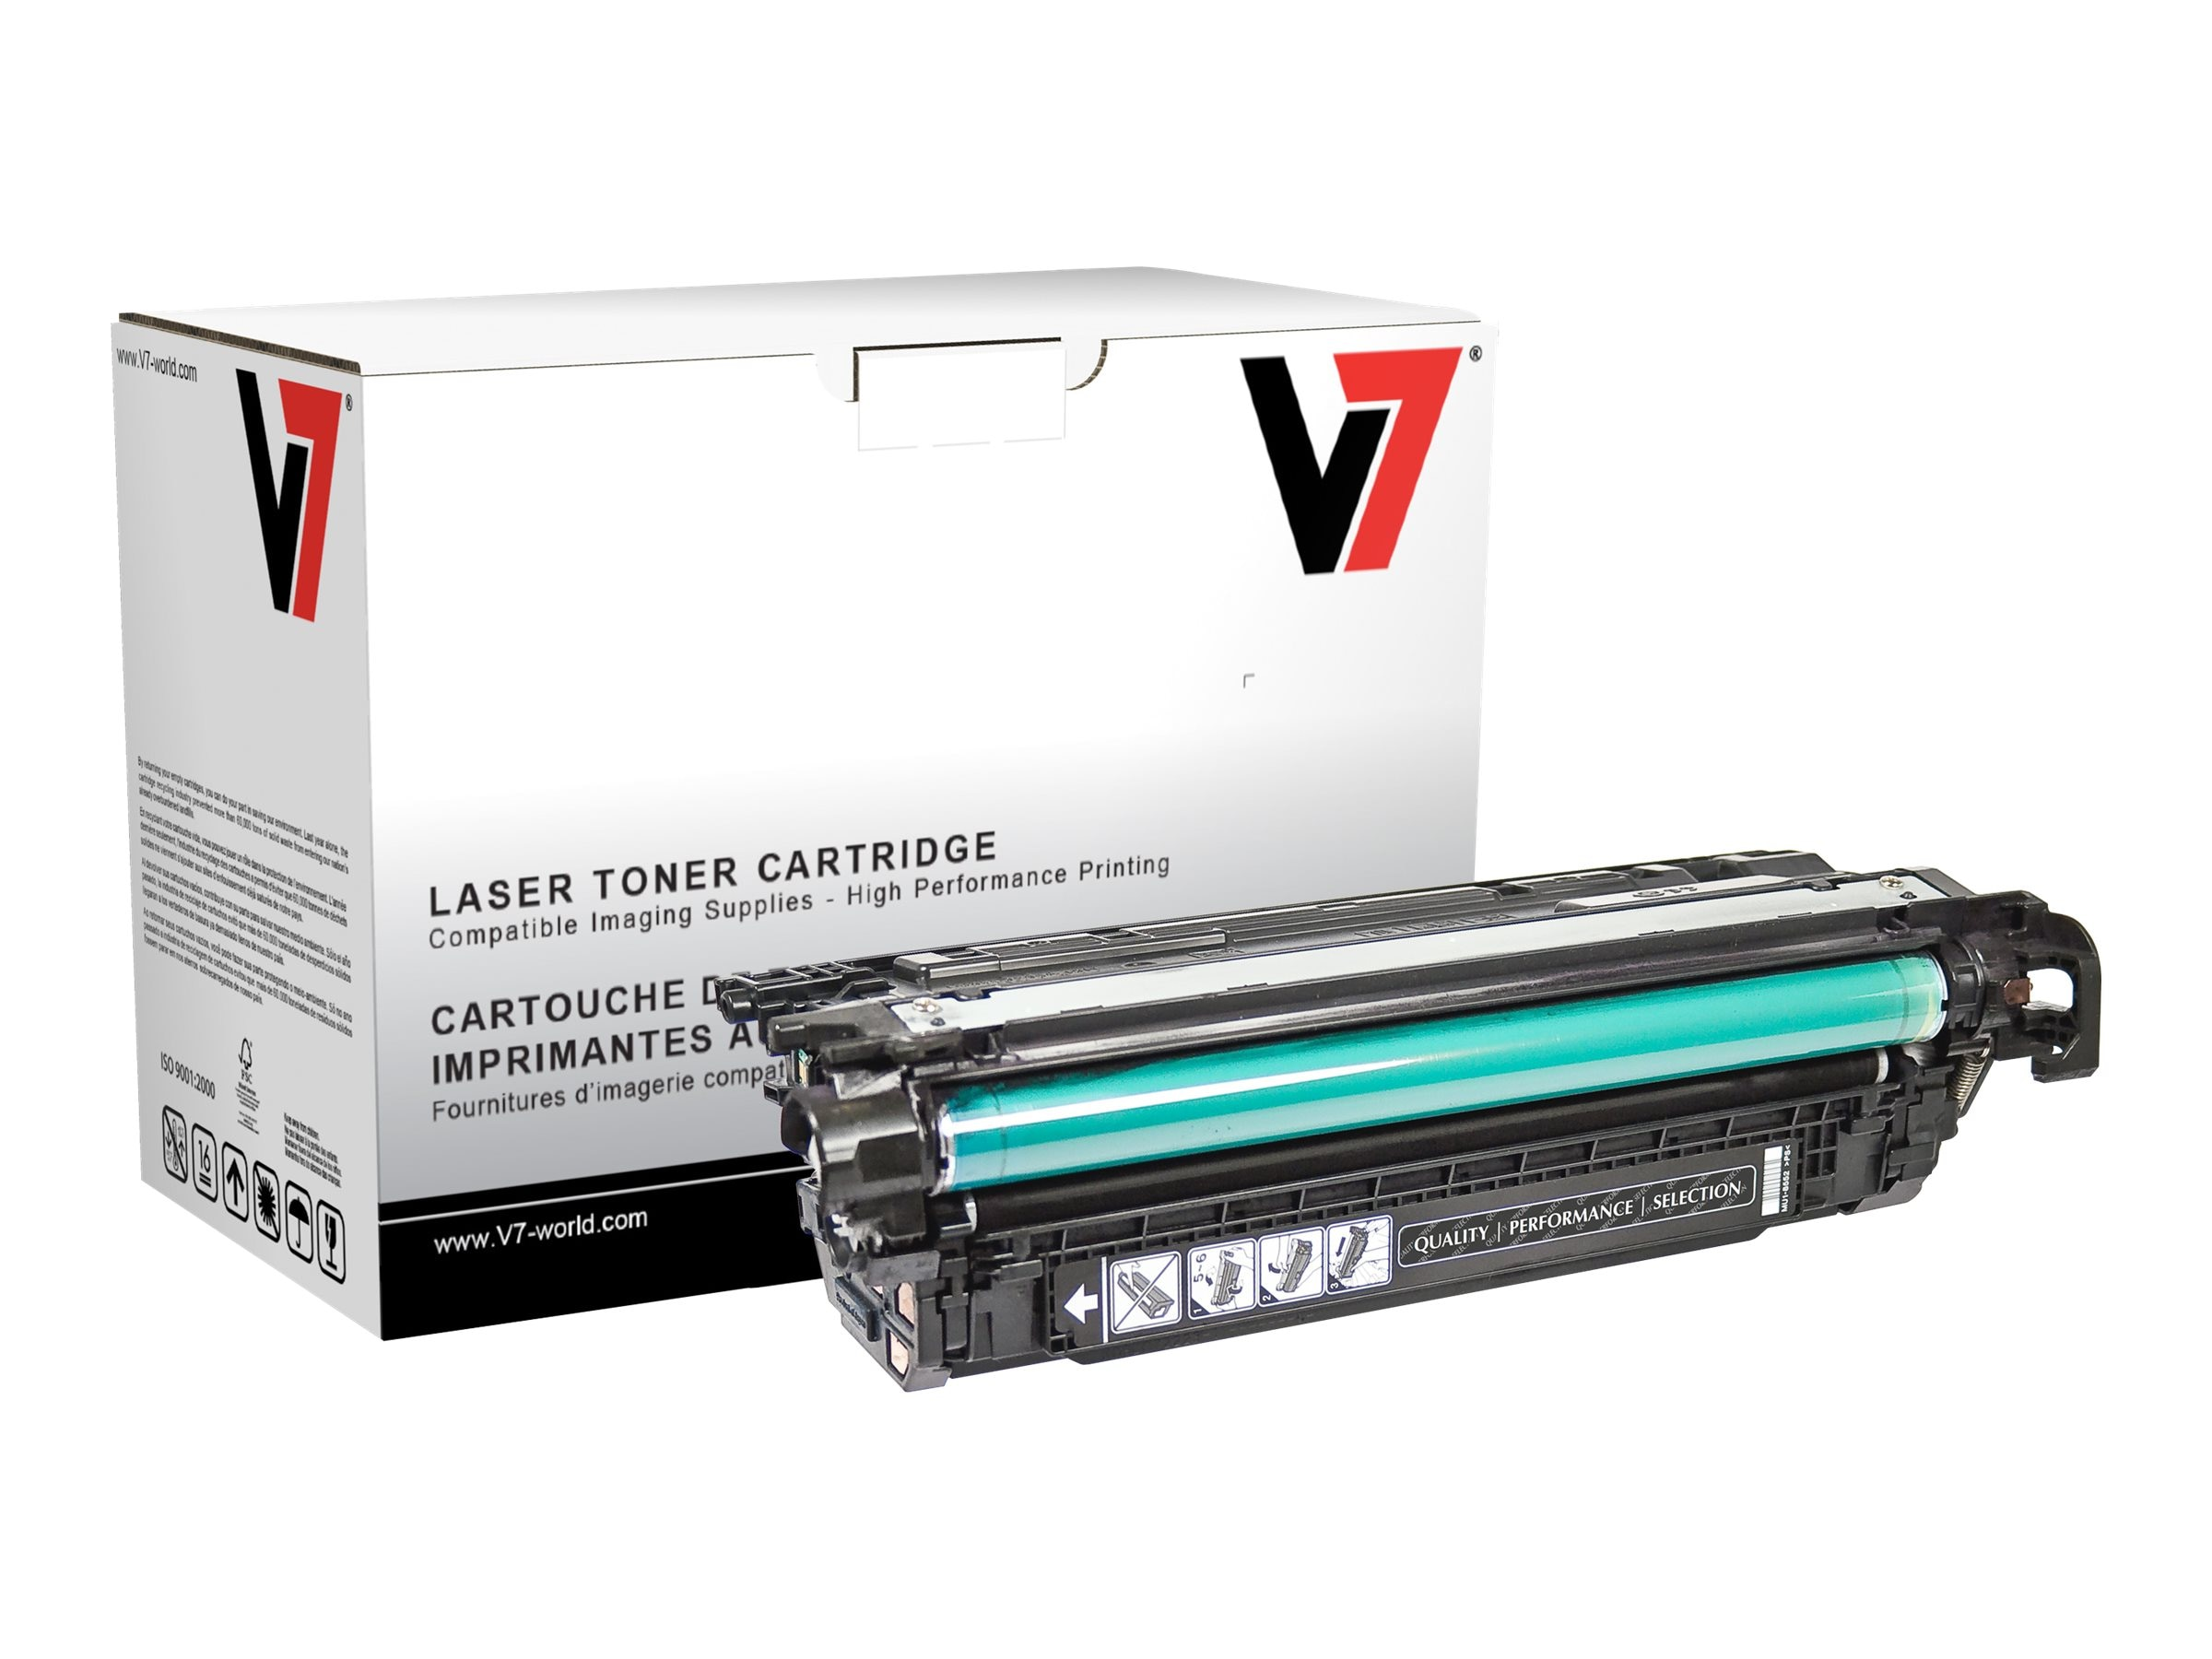 V7 CE260A Black Toner Cartridge for HP LaserJet P4025 4525 (TAA Compliant)